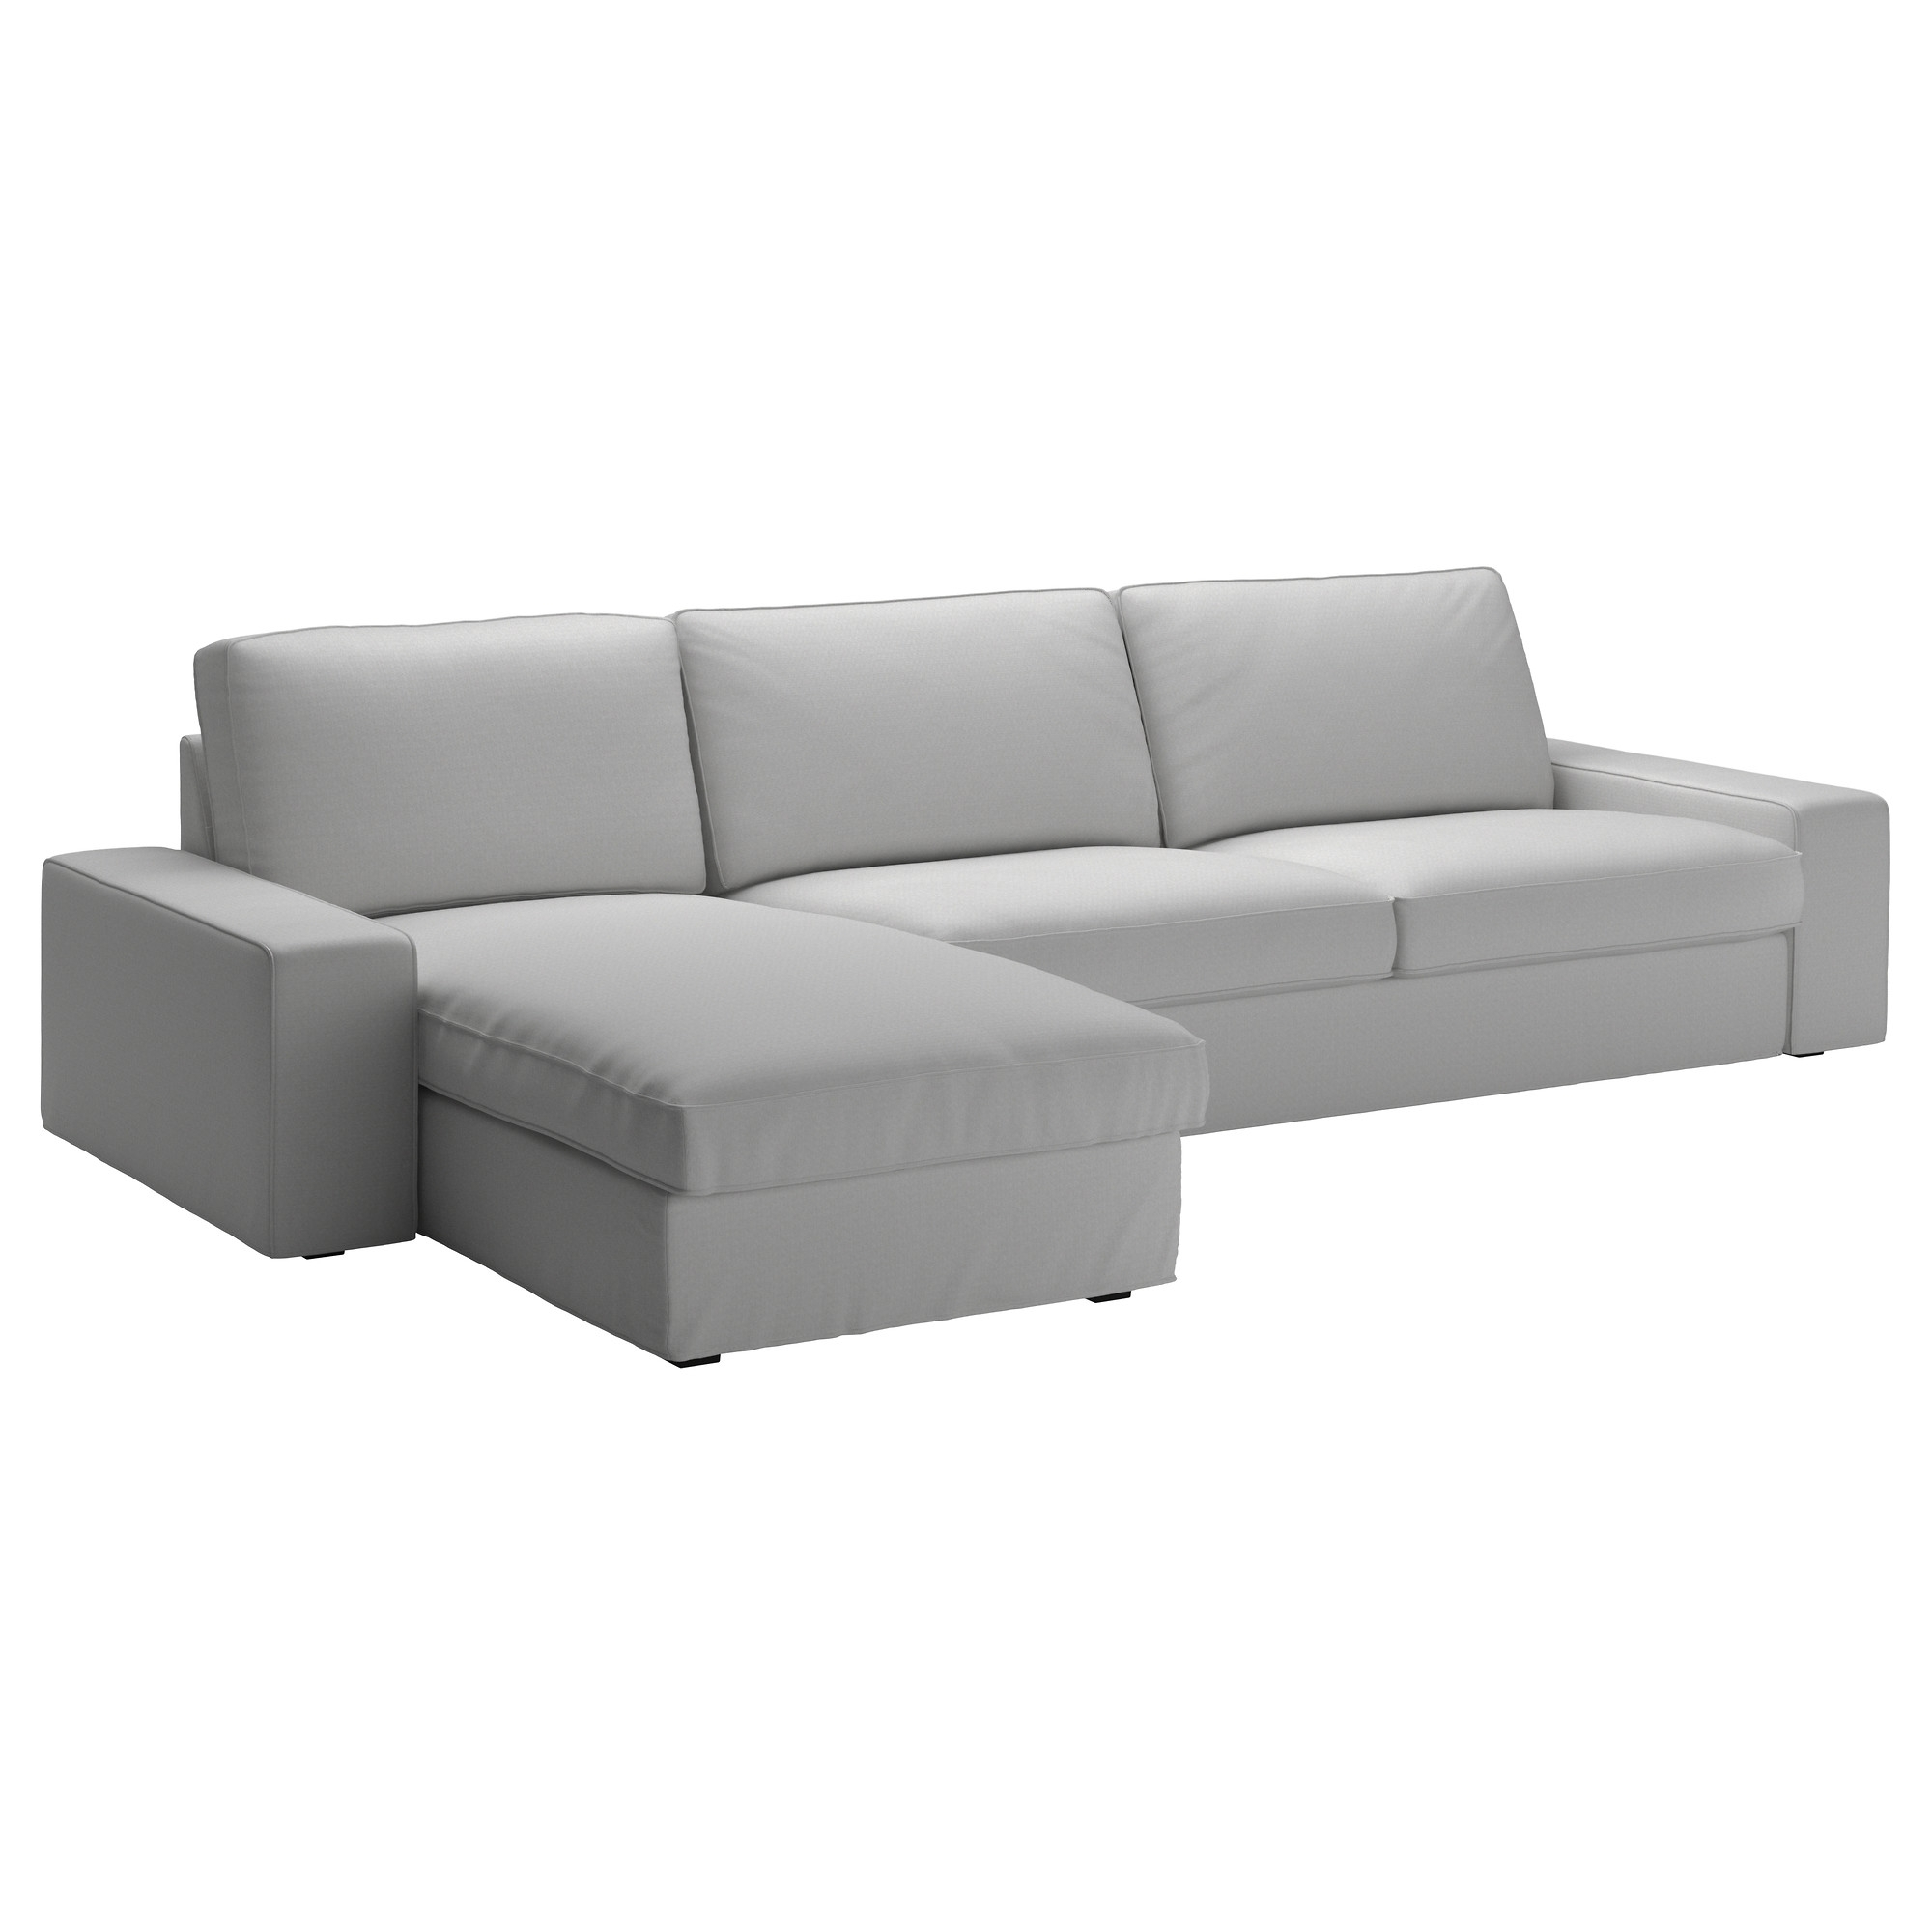 Well Known Kivik 4 Seat Sofa – Orrsta Light Grey – Ikea For 4 Seat Sofas (View 20 of 20)